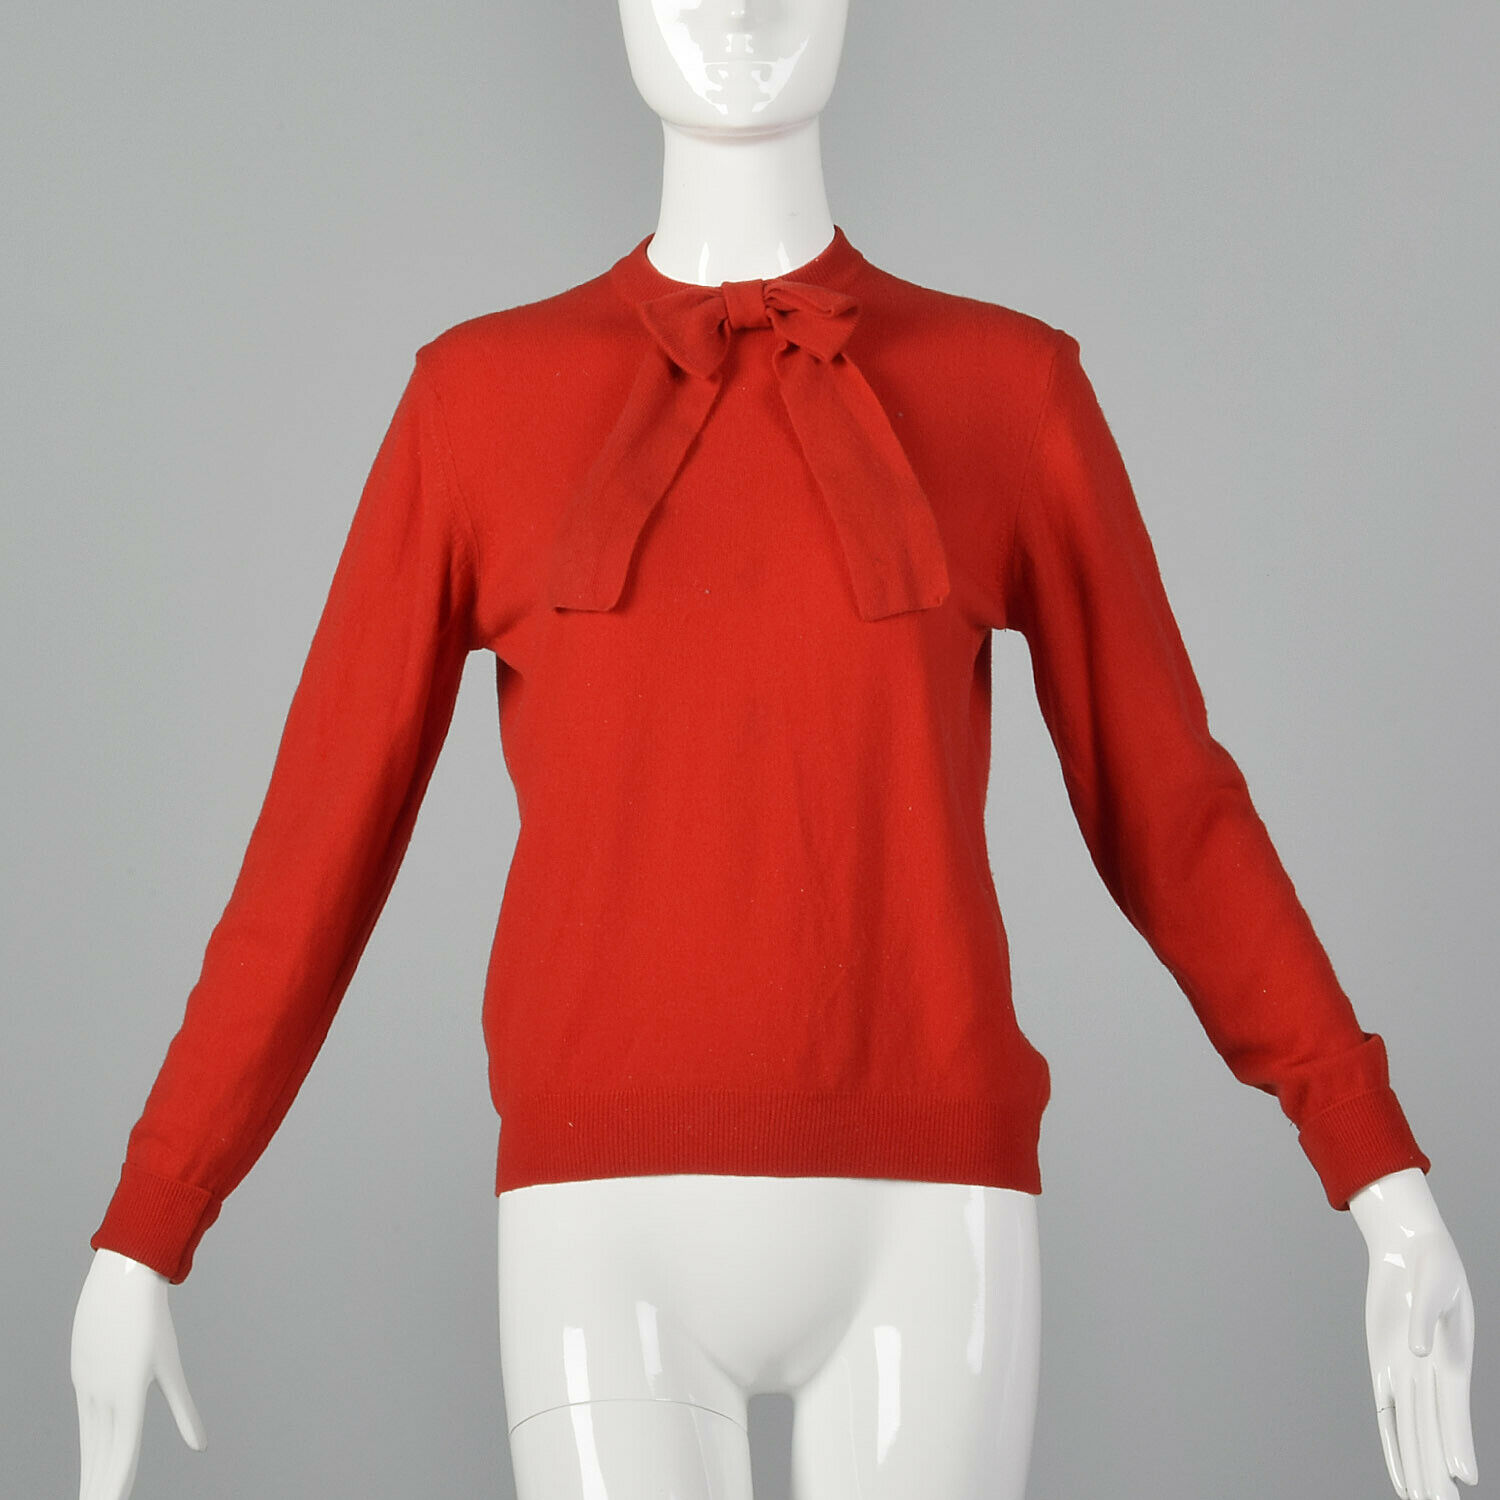 Medium 1960s Knit Sweater Red Bow Front Vintage Long Sleeve Soft Feel Rib Knit